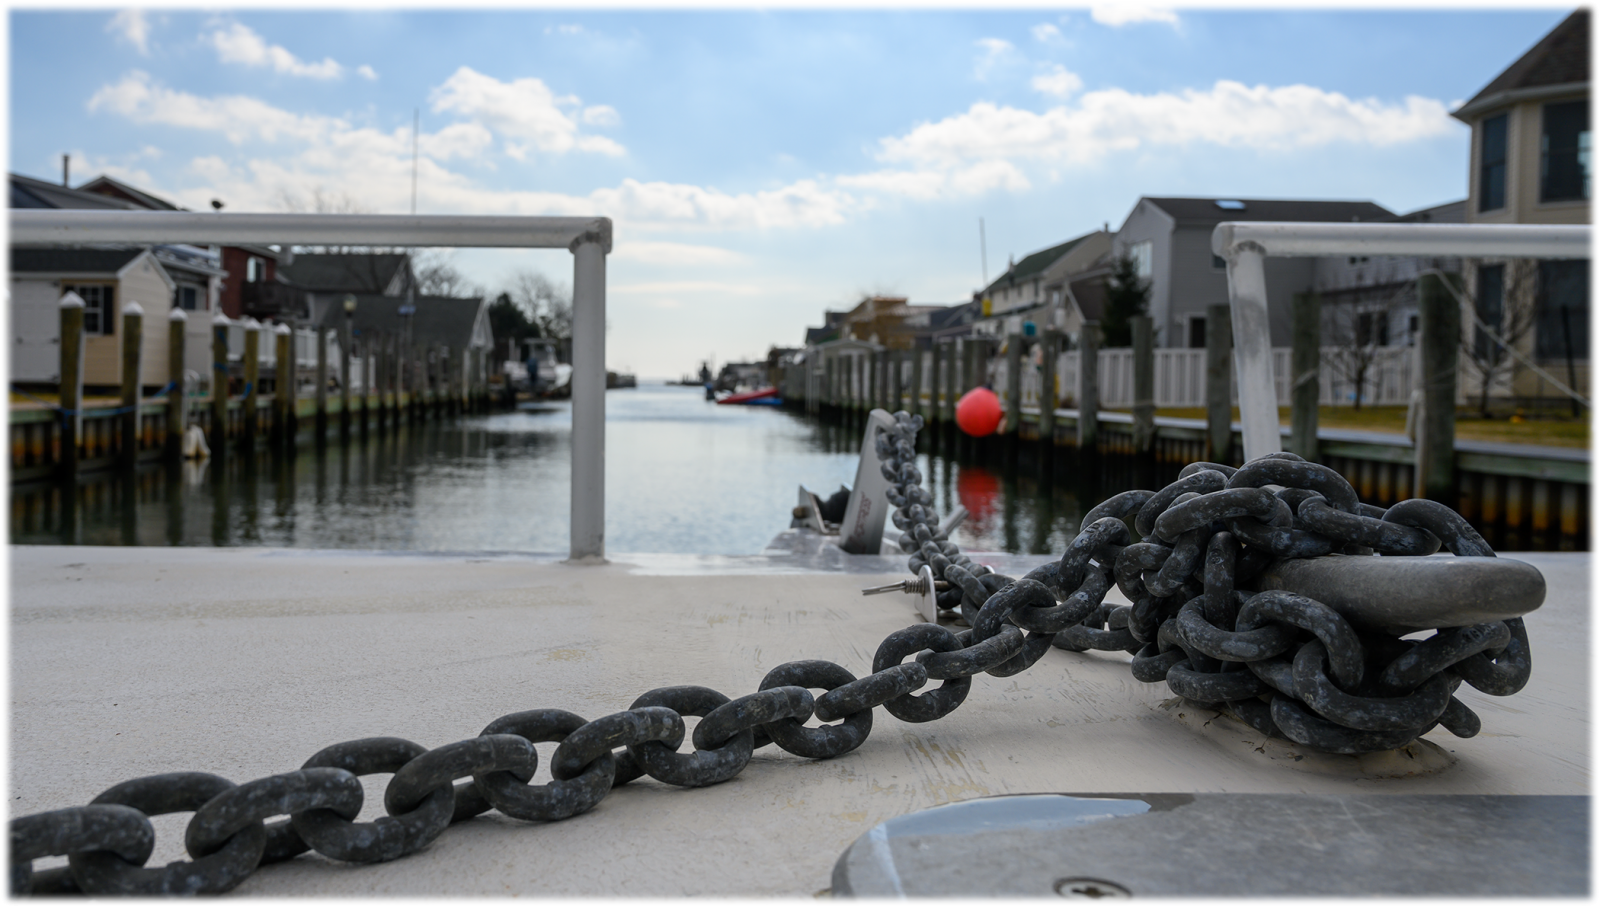 Catapult-anchor-chain